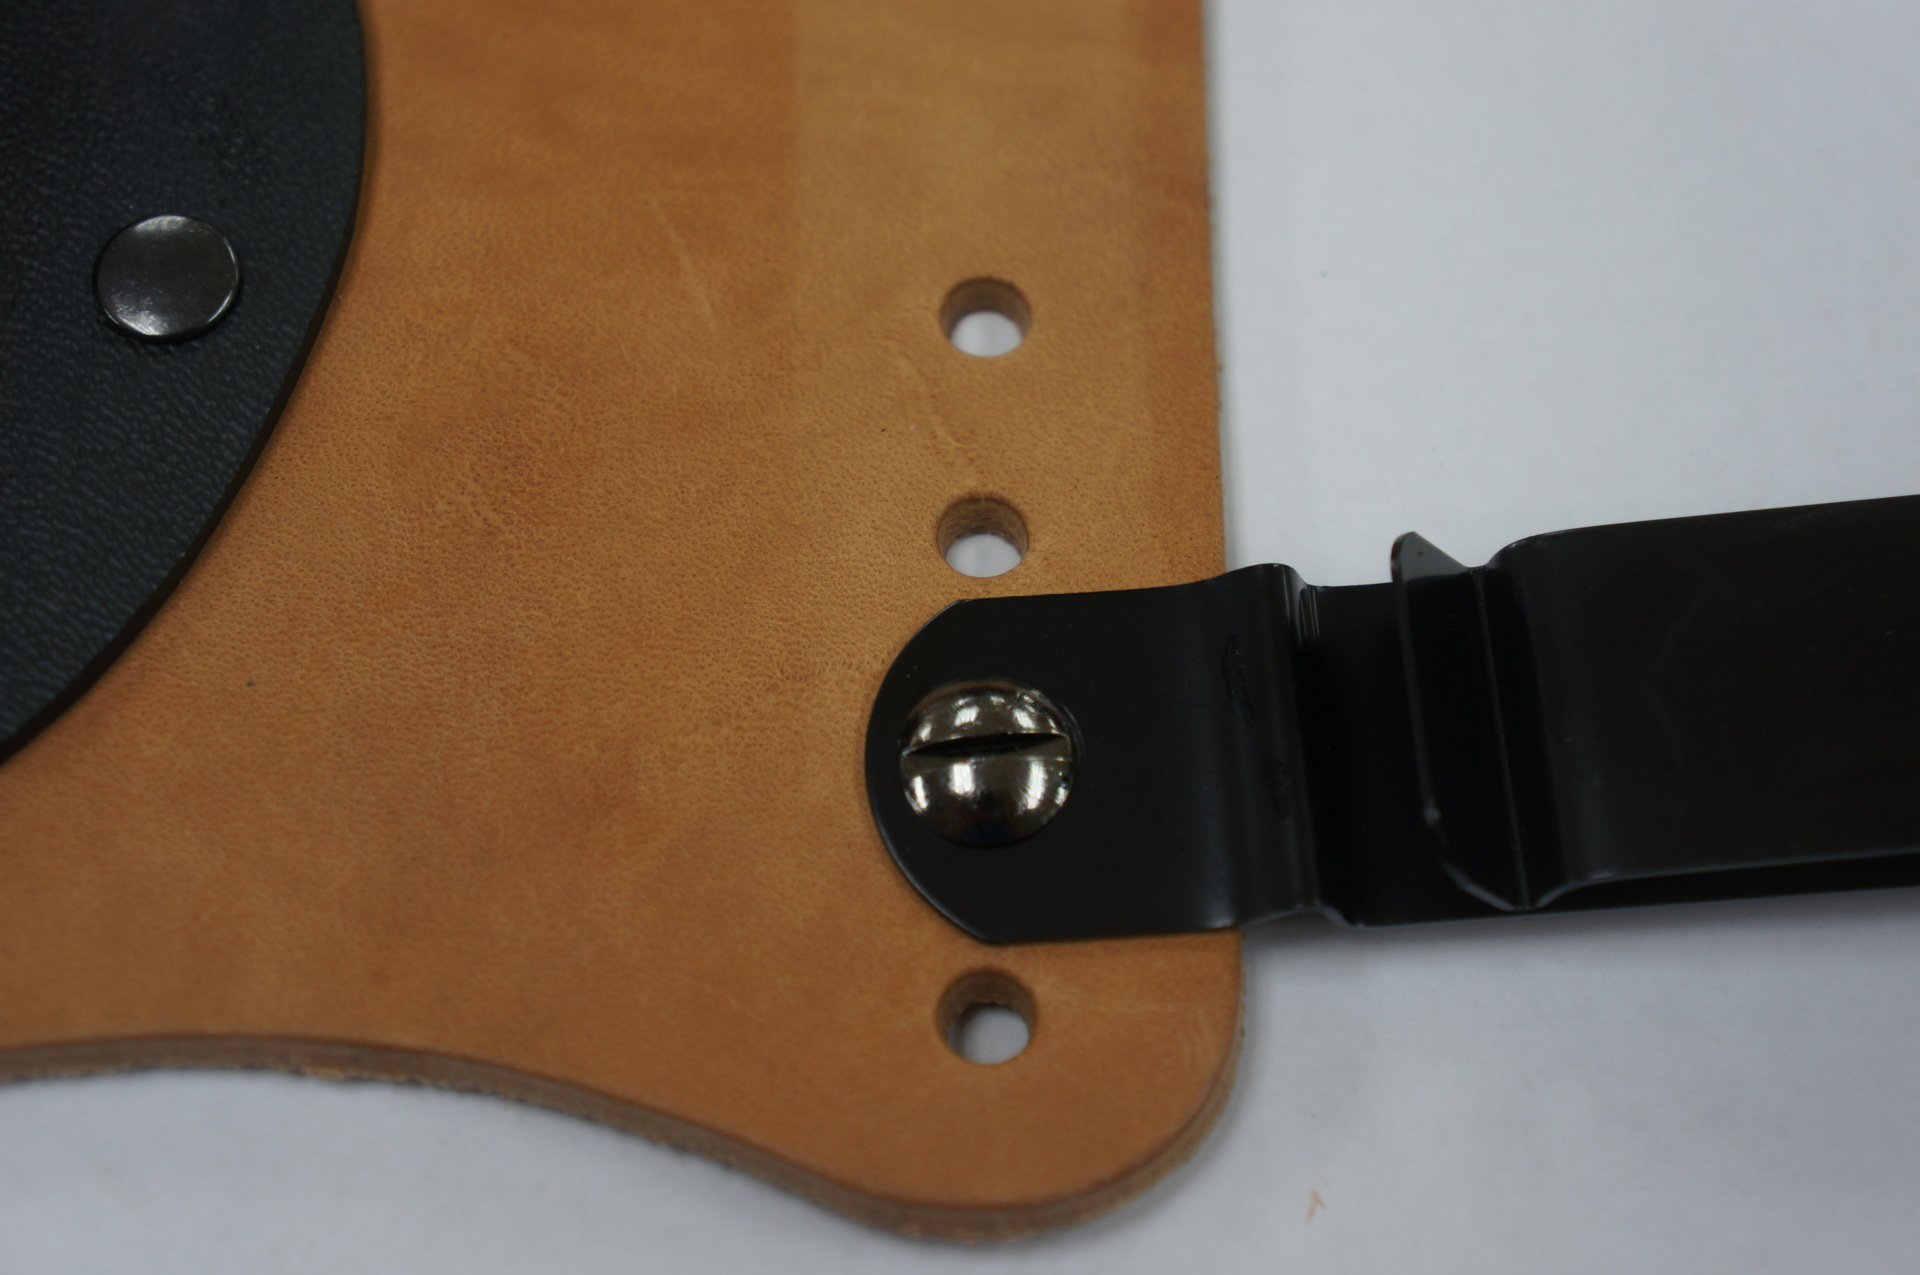 adjustale holster, IWB holsters, best holster, holsters for sale, tuckable holsters, premium leather holster